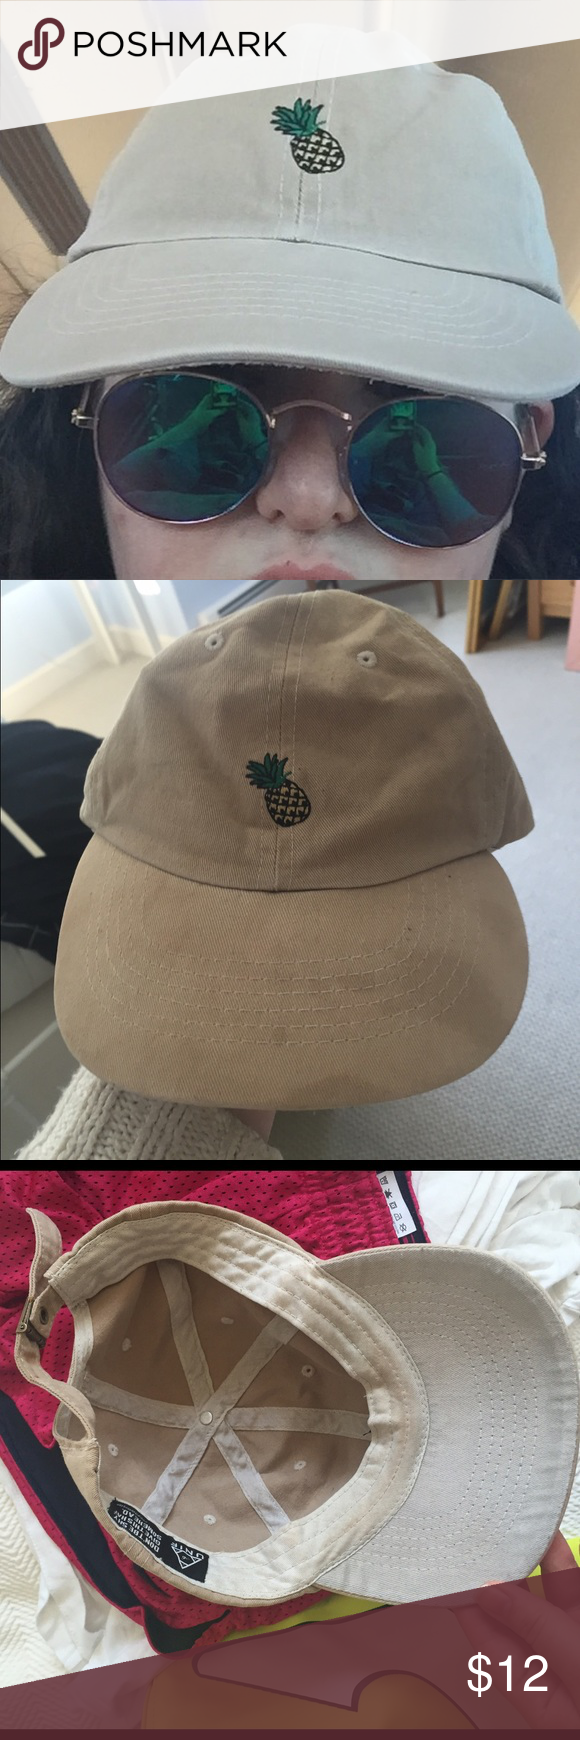 8c6631d695a5d6 Unif Pineapple Hat 100% authentic. Bought off of Depop. Worn once to ...